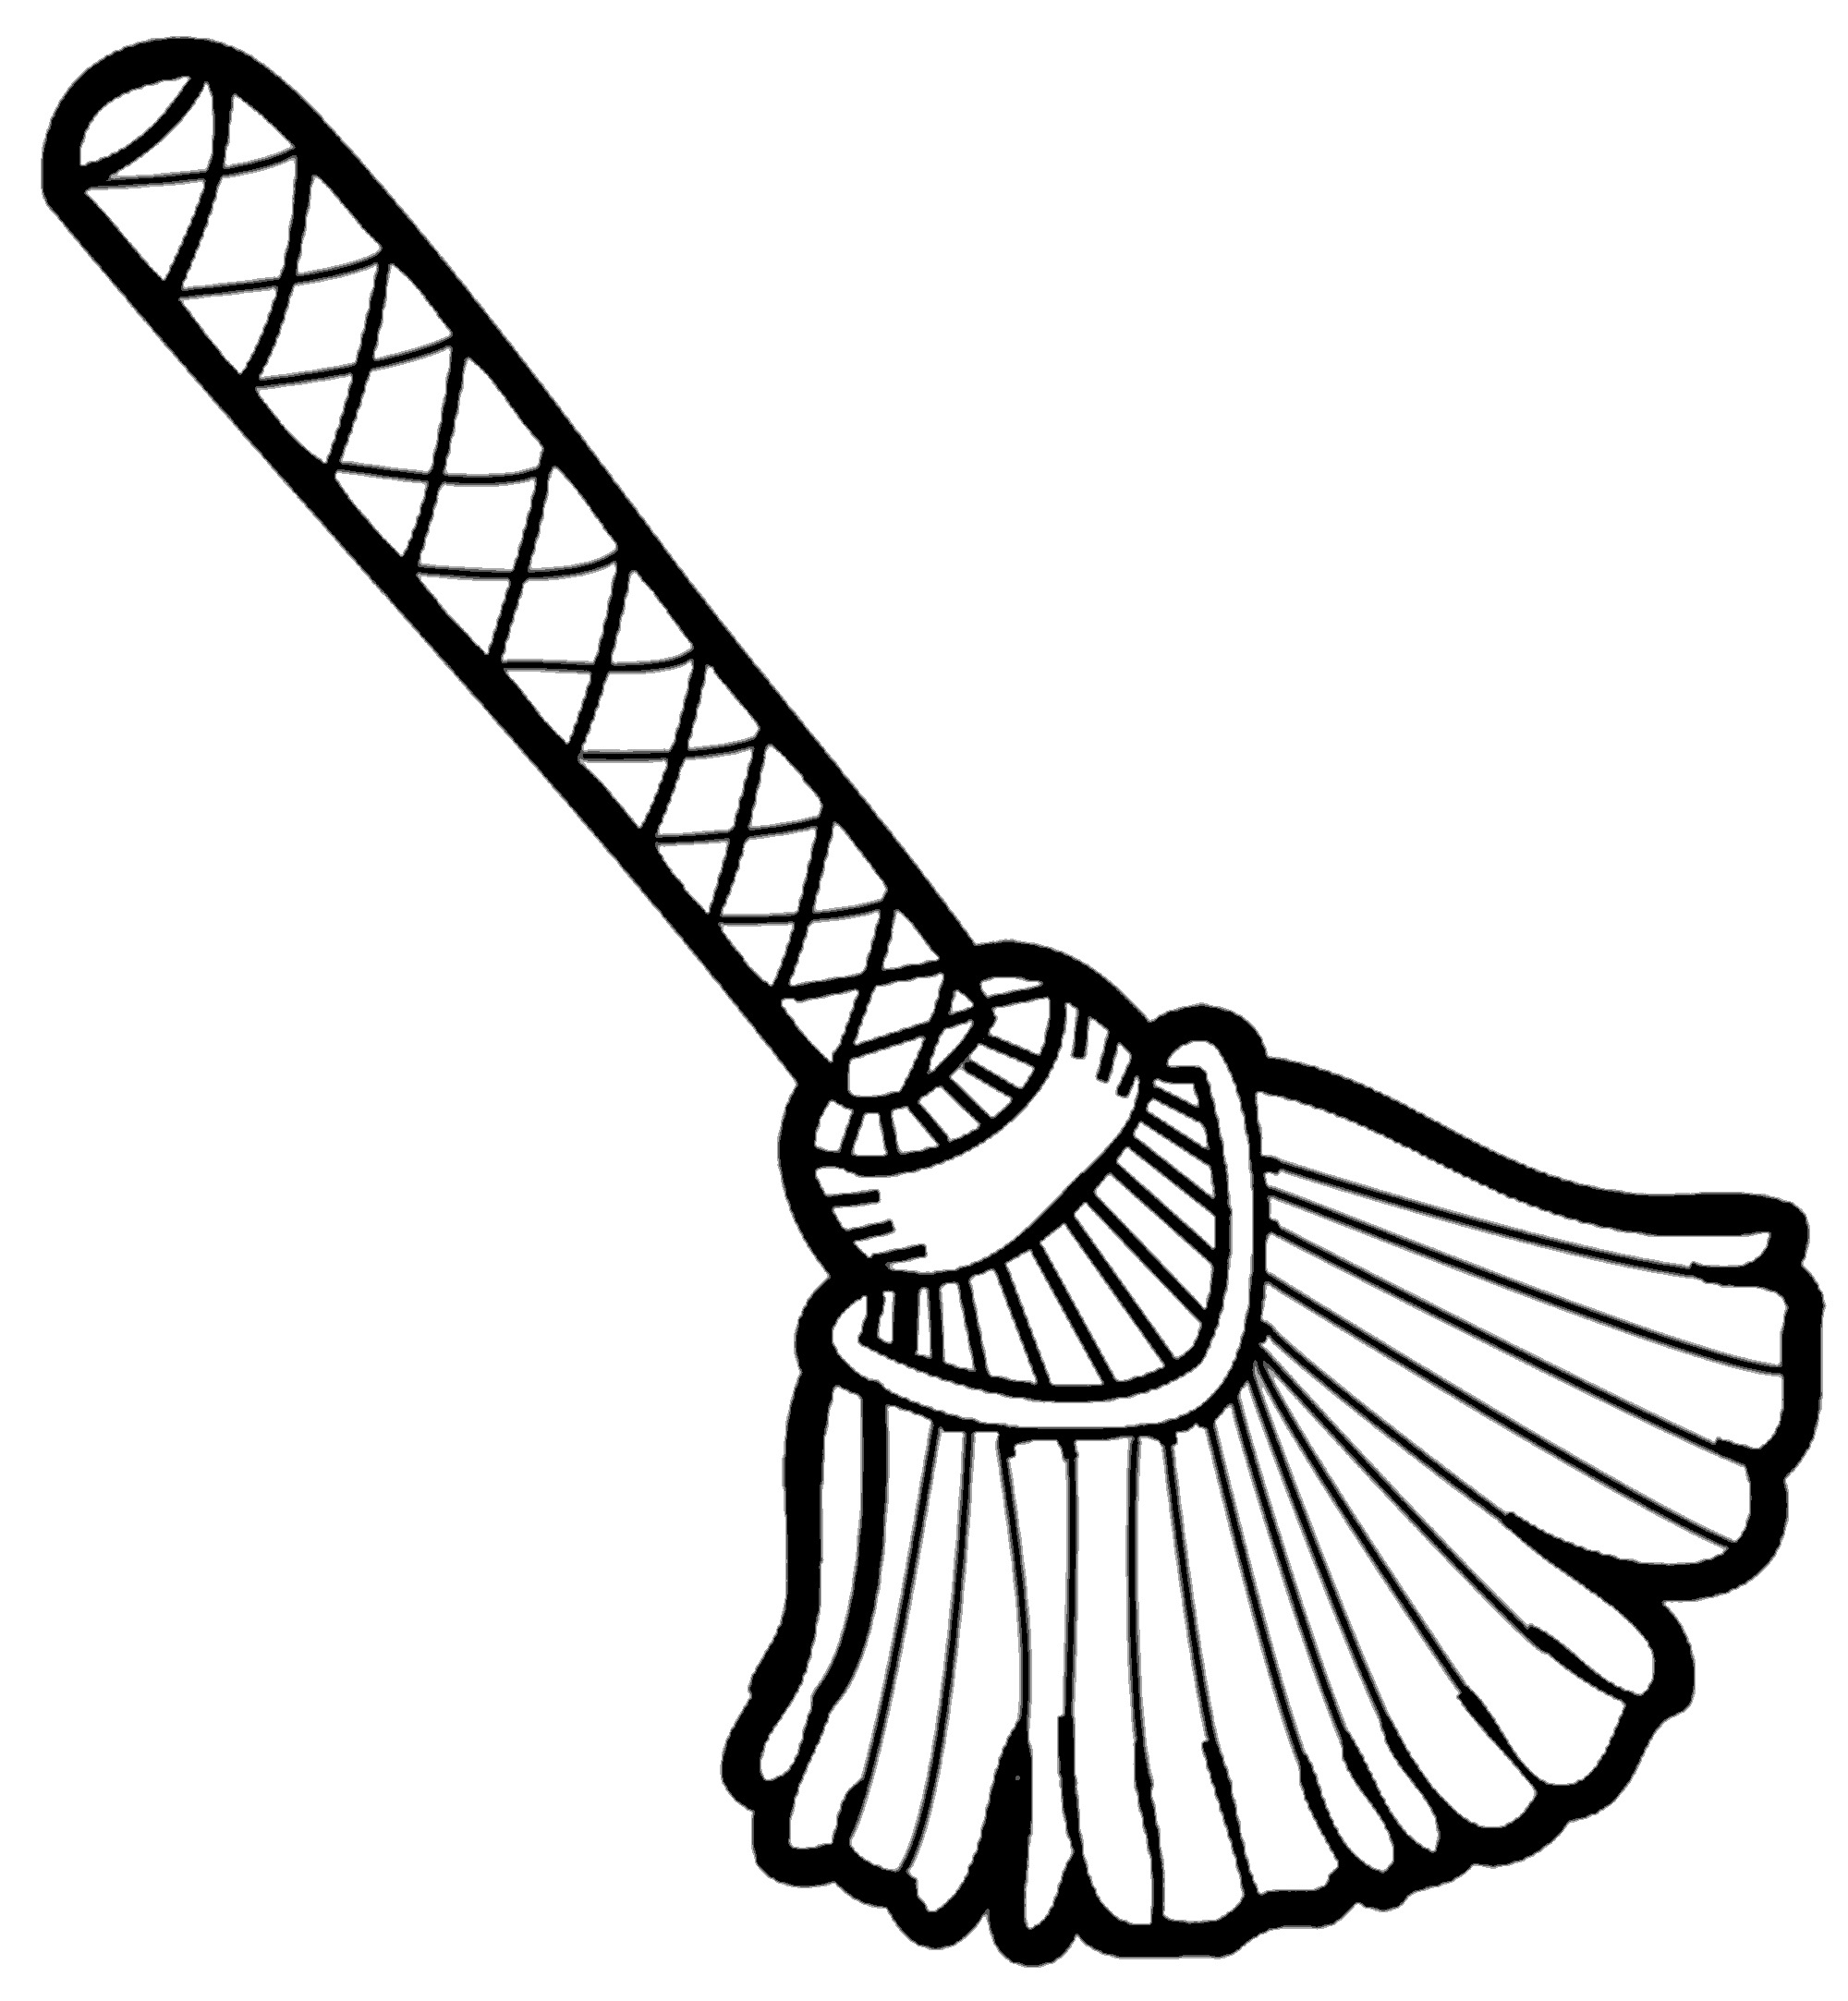 2000x2166 Broom Feather Clipart, Explore Pictures